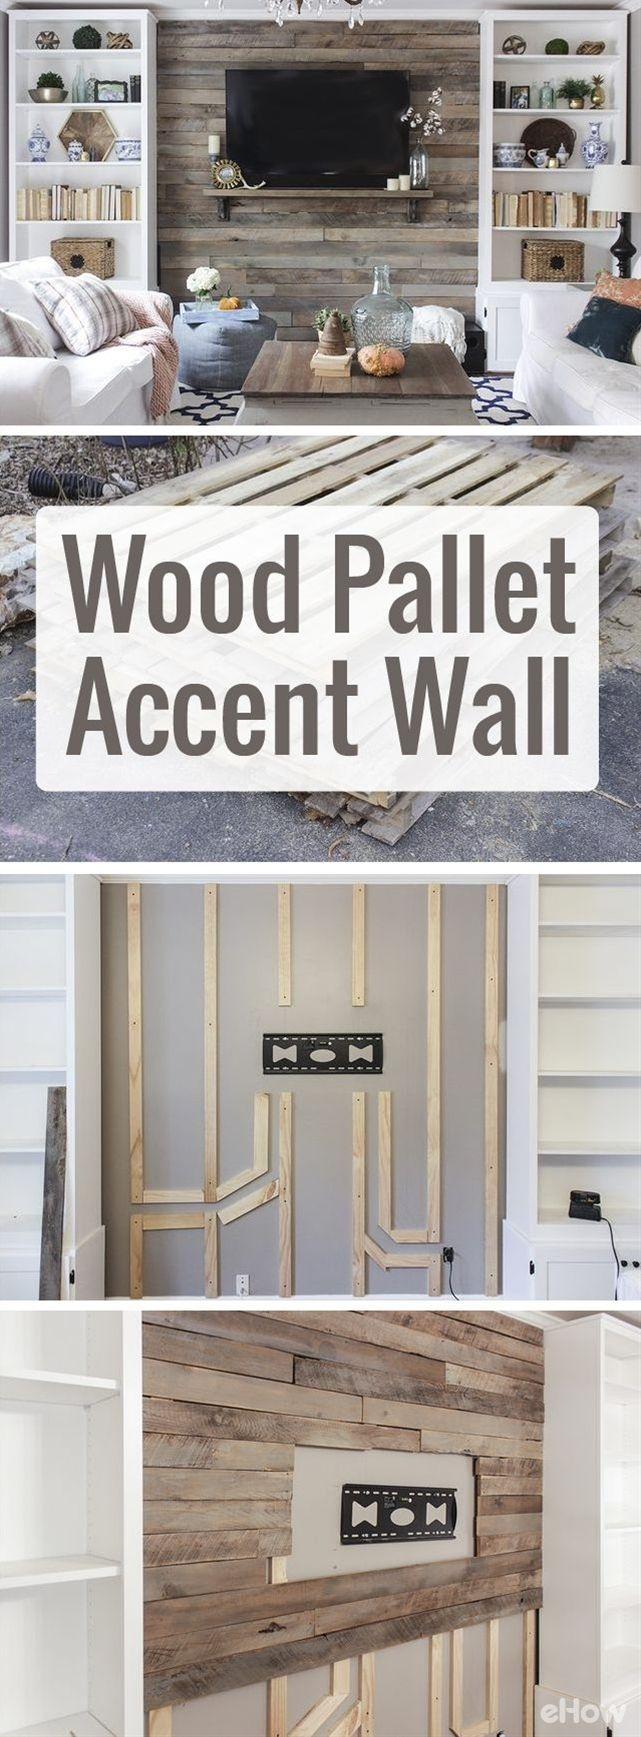 17 diy entertainment center ideas and designs for your new home pallets aqua and cozy - Natrliche Hickory Holzbden